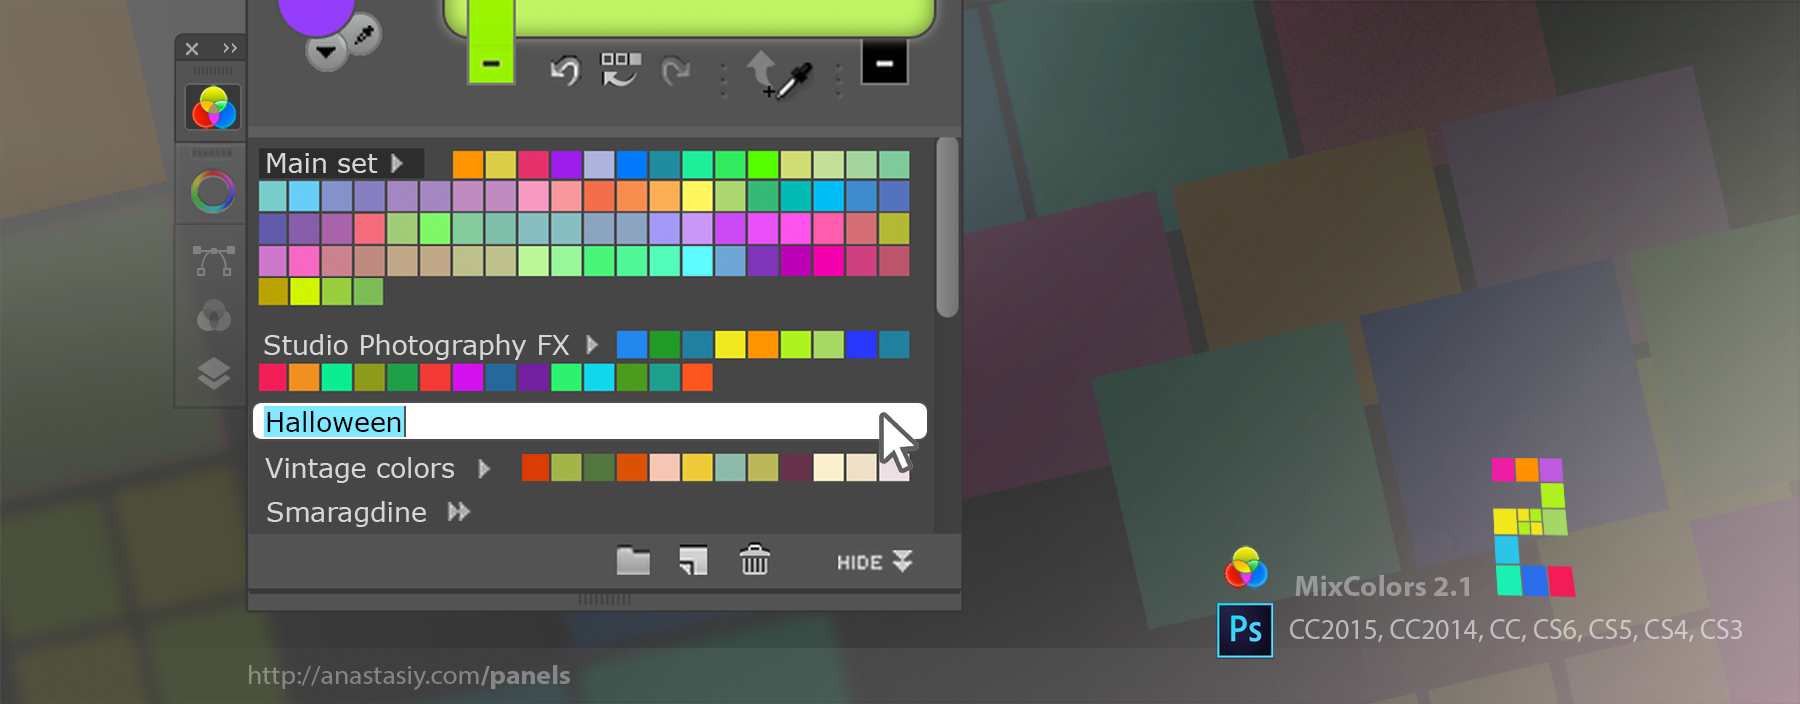 MixColors 2.1 improves color swatch groups renaming and more